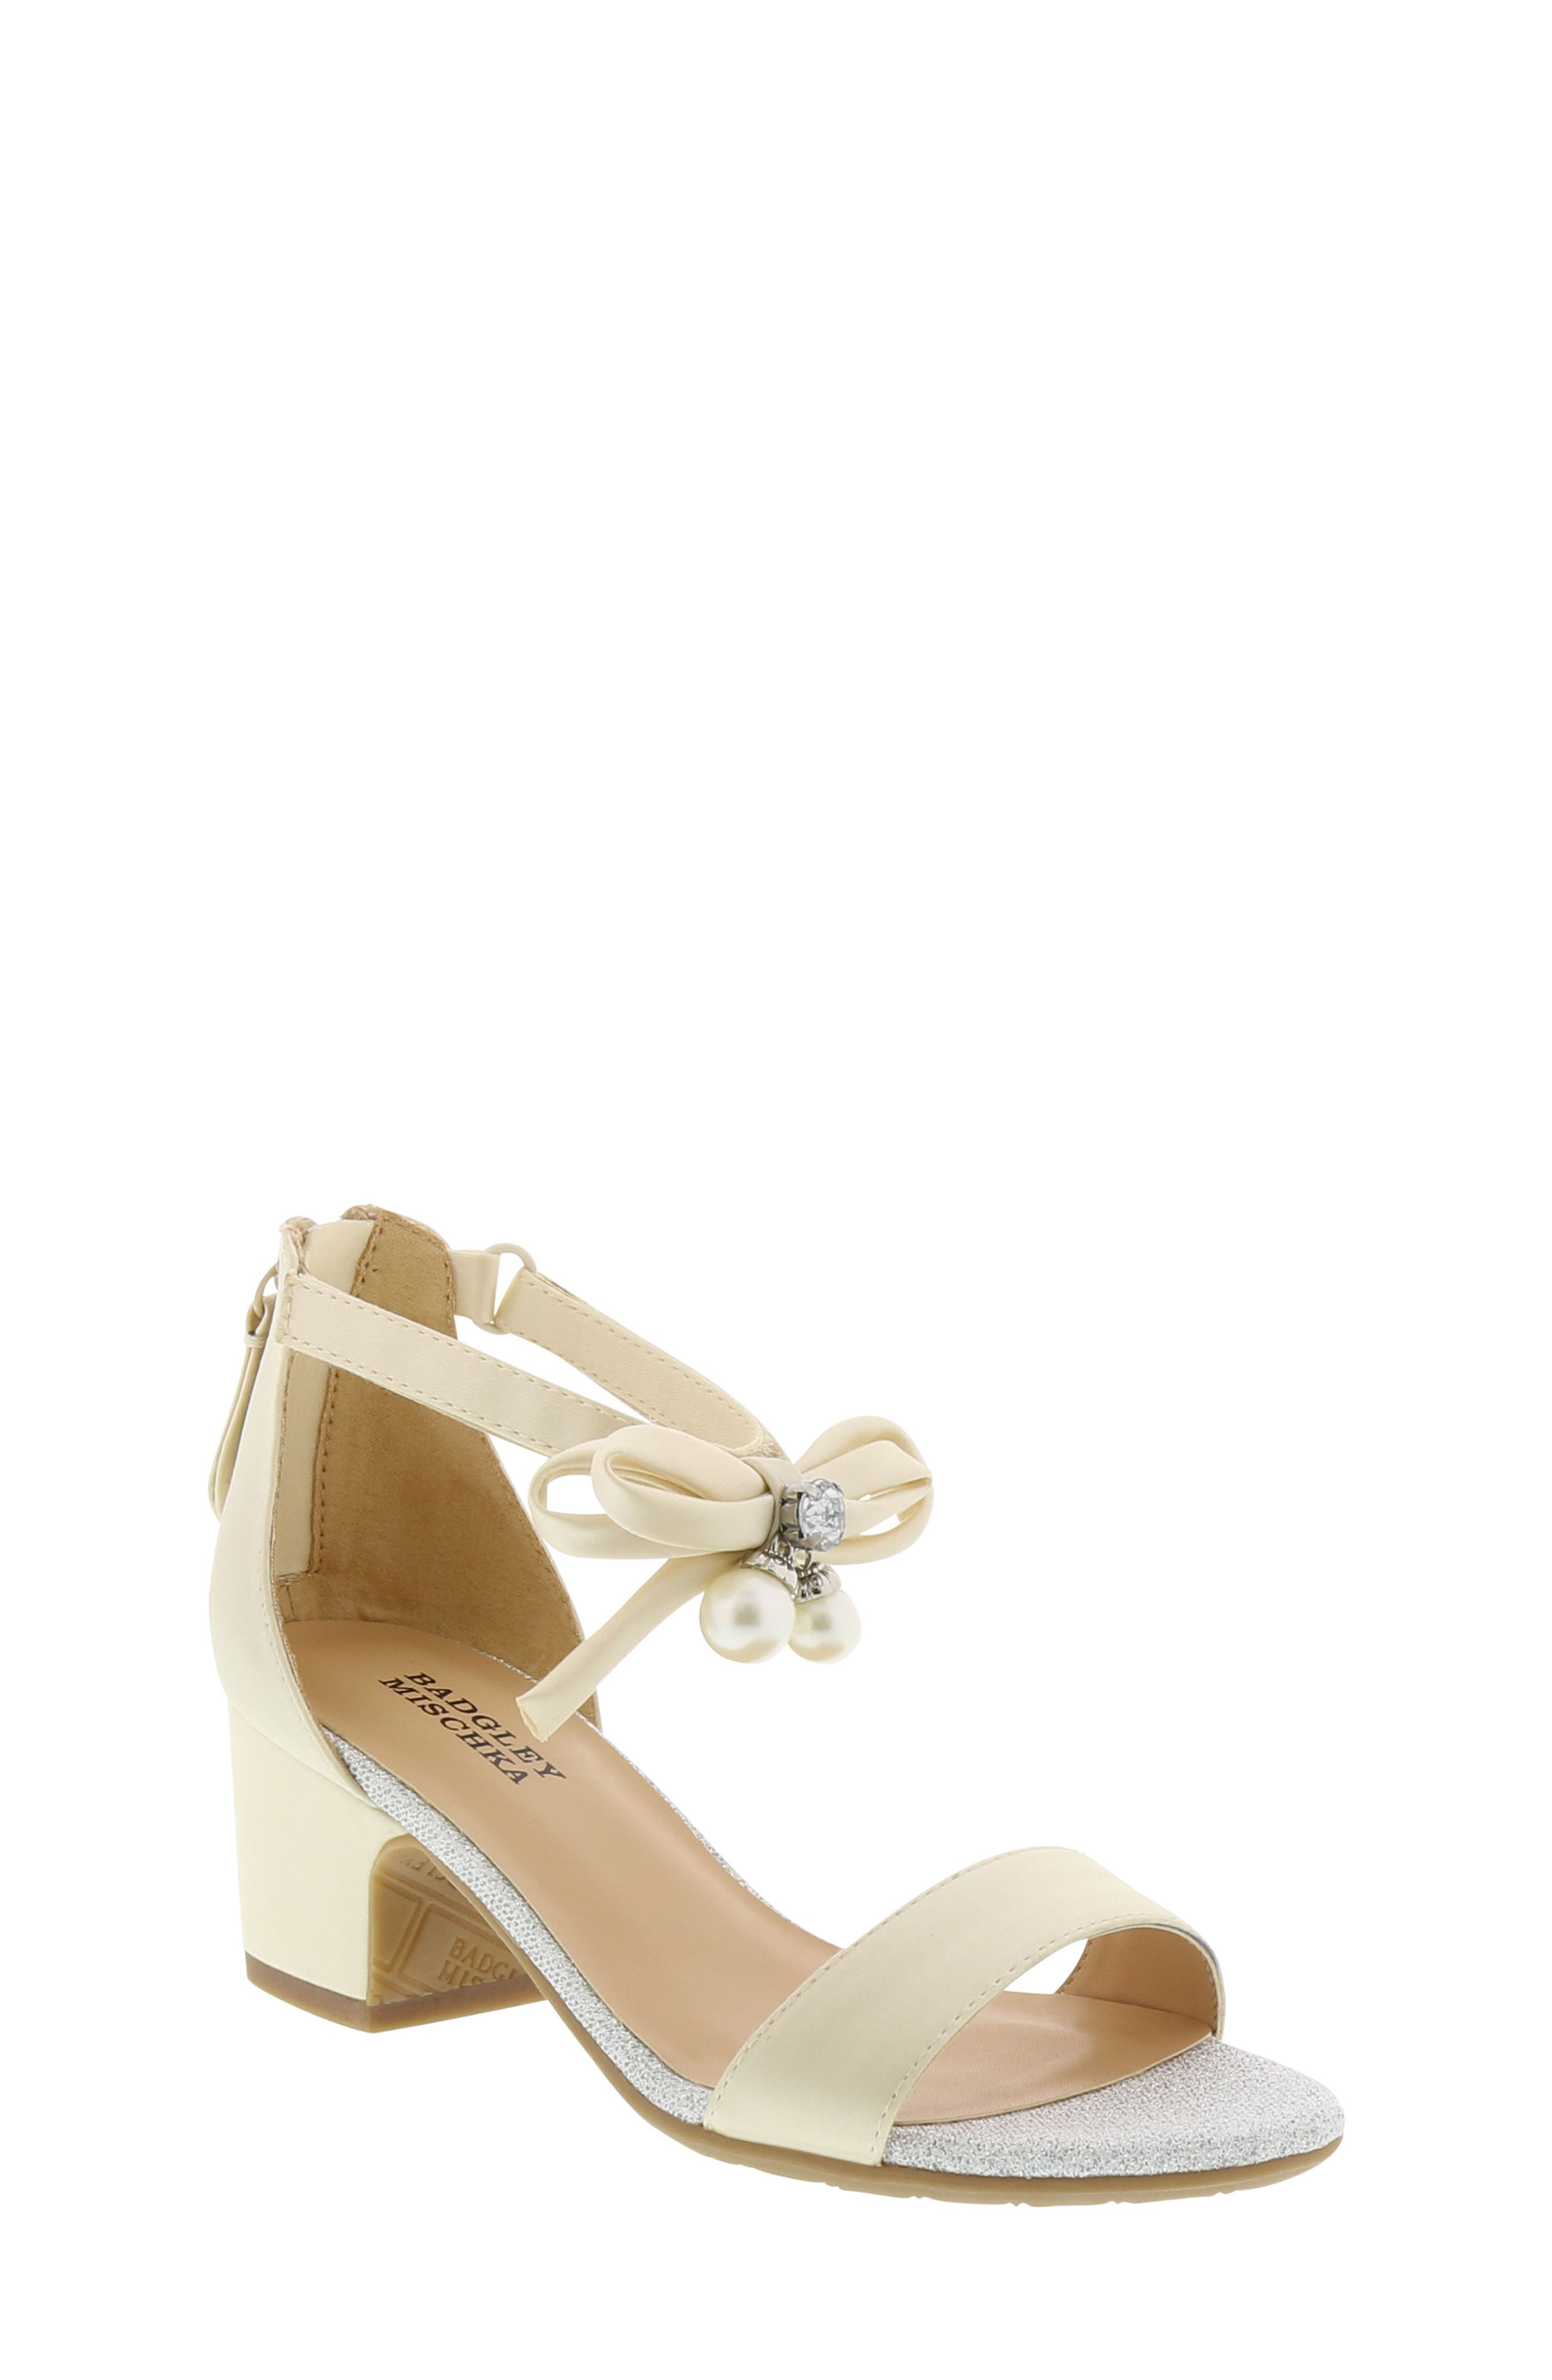 Badgley Mischka Pernia Embellished Sandal (Toddler, Little Kid & Big Kid)